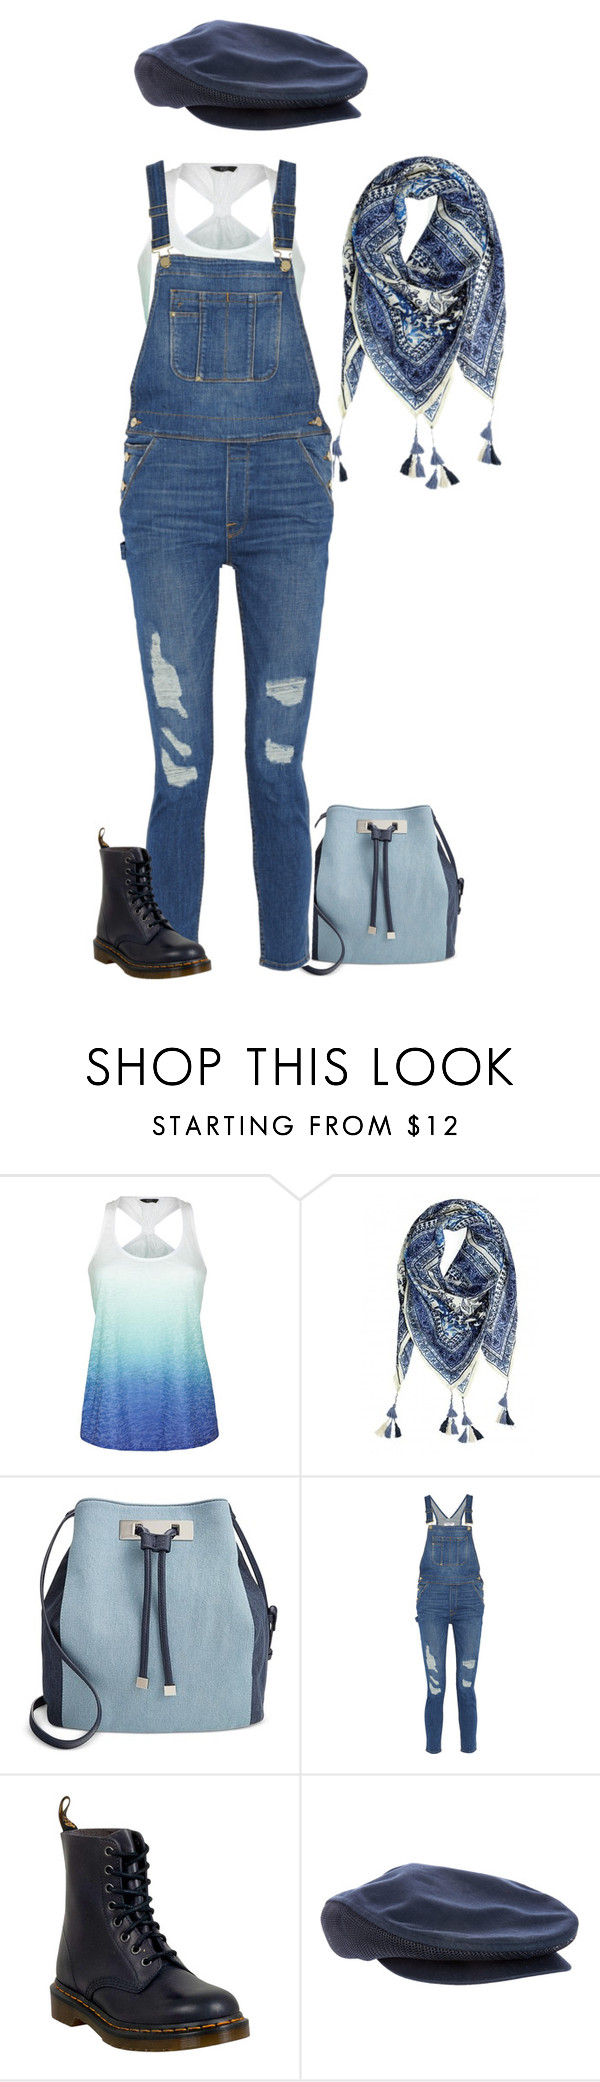 """""""Audrey Ramirez"""" by jchalo3 ❤ liked on Polyvore featuring Vismaya, INC International Concepts, Frame Denim, Dr. Martens and Marc Jacobs"""